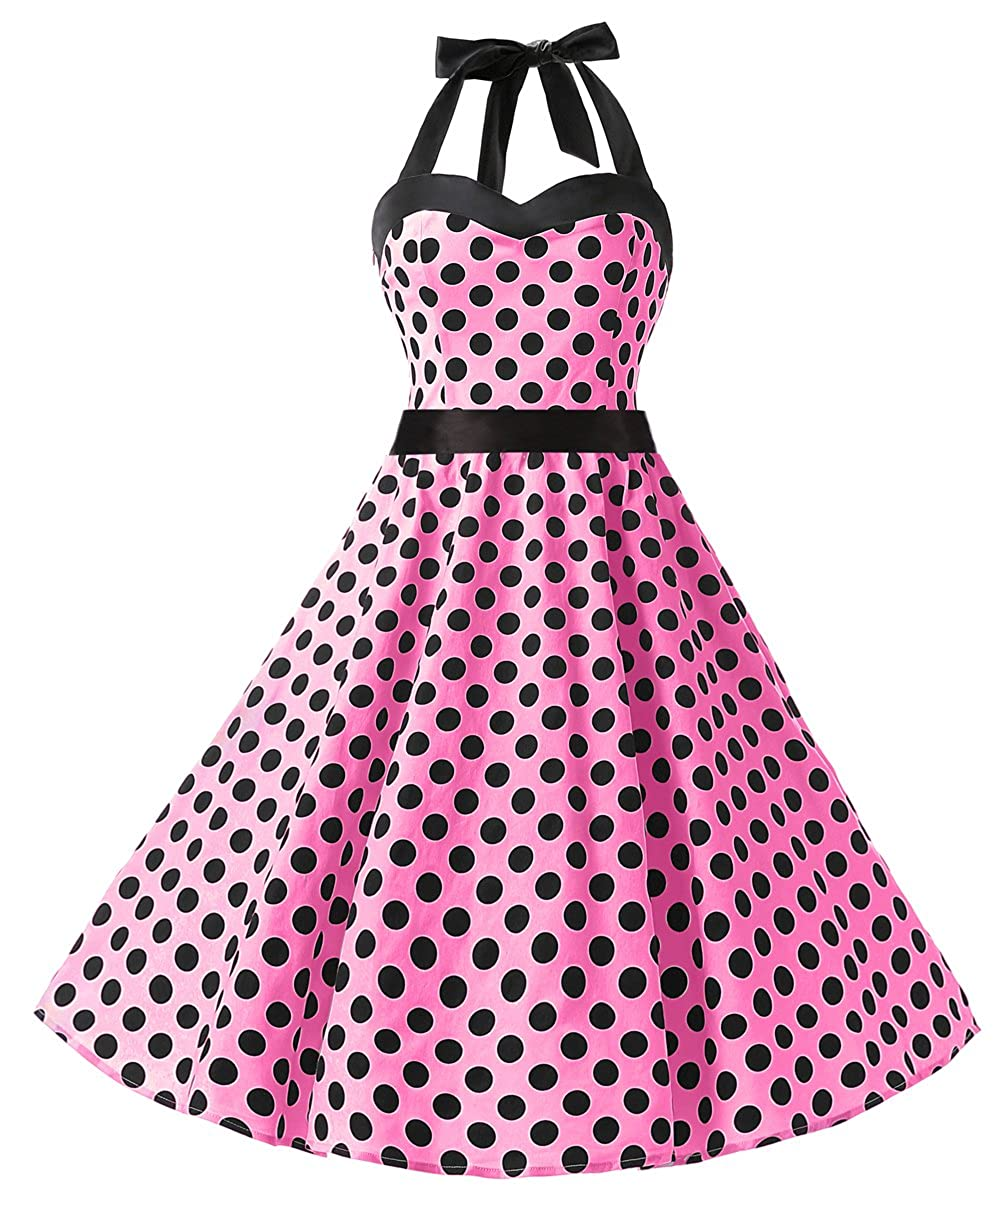 TALLA XS. Dresstells® Halter 50s Rockabilly Polka Dots Audrey Dress Retro Cocktail Dress Pink Black Dot XS